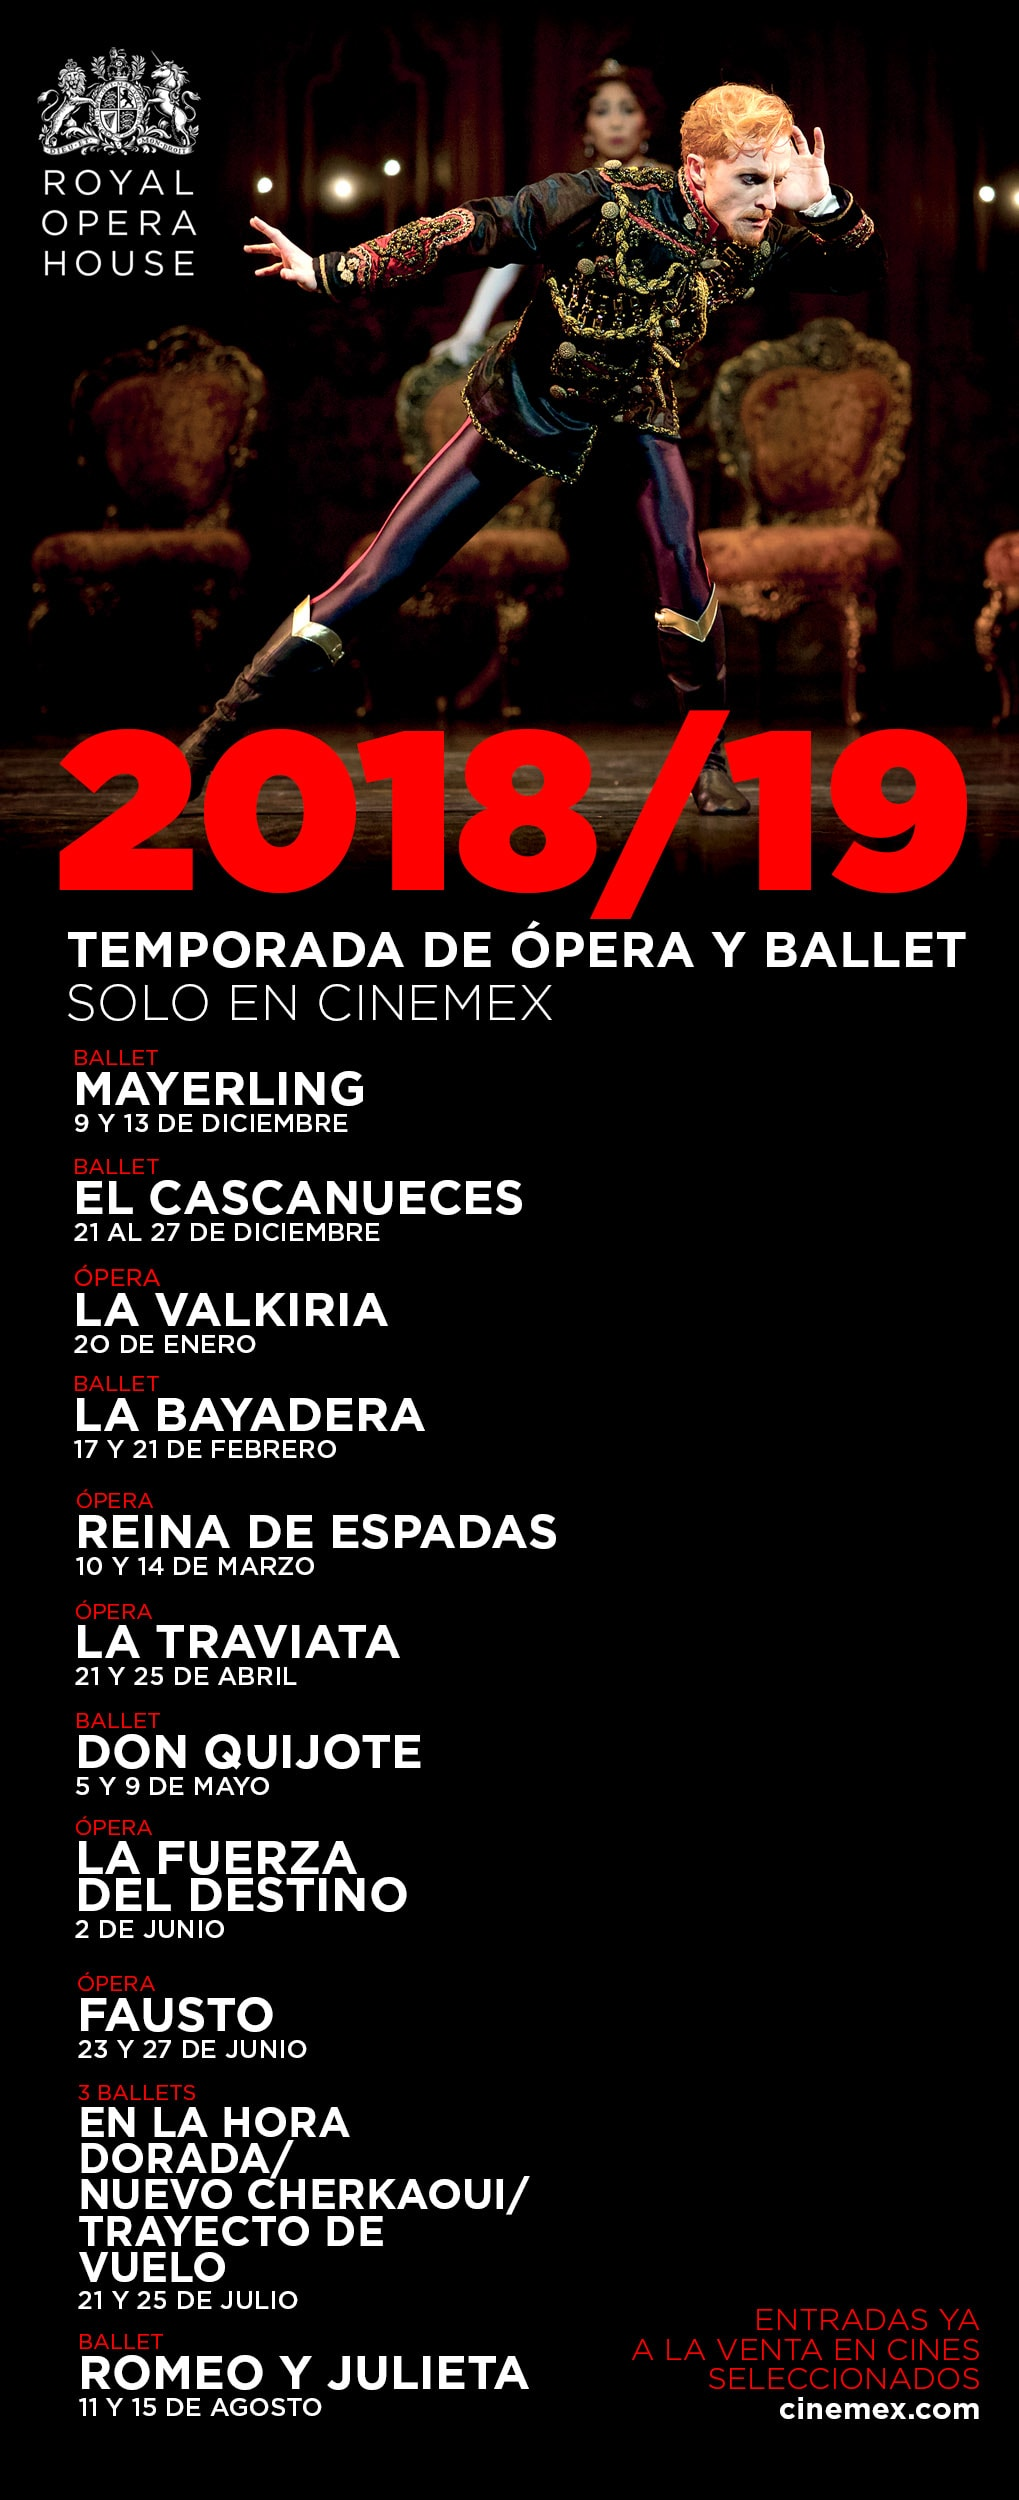 Calendario de Royal Opera House en Cinemex